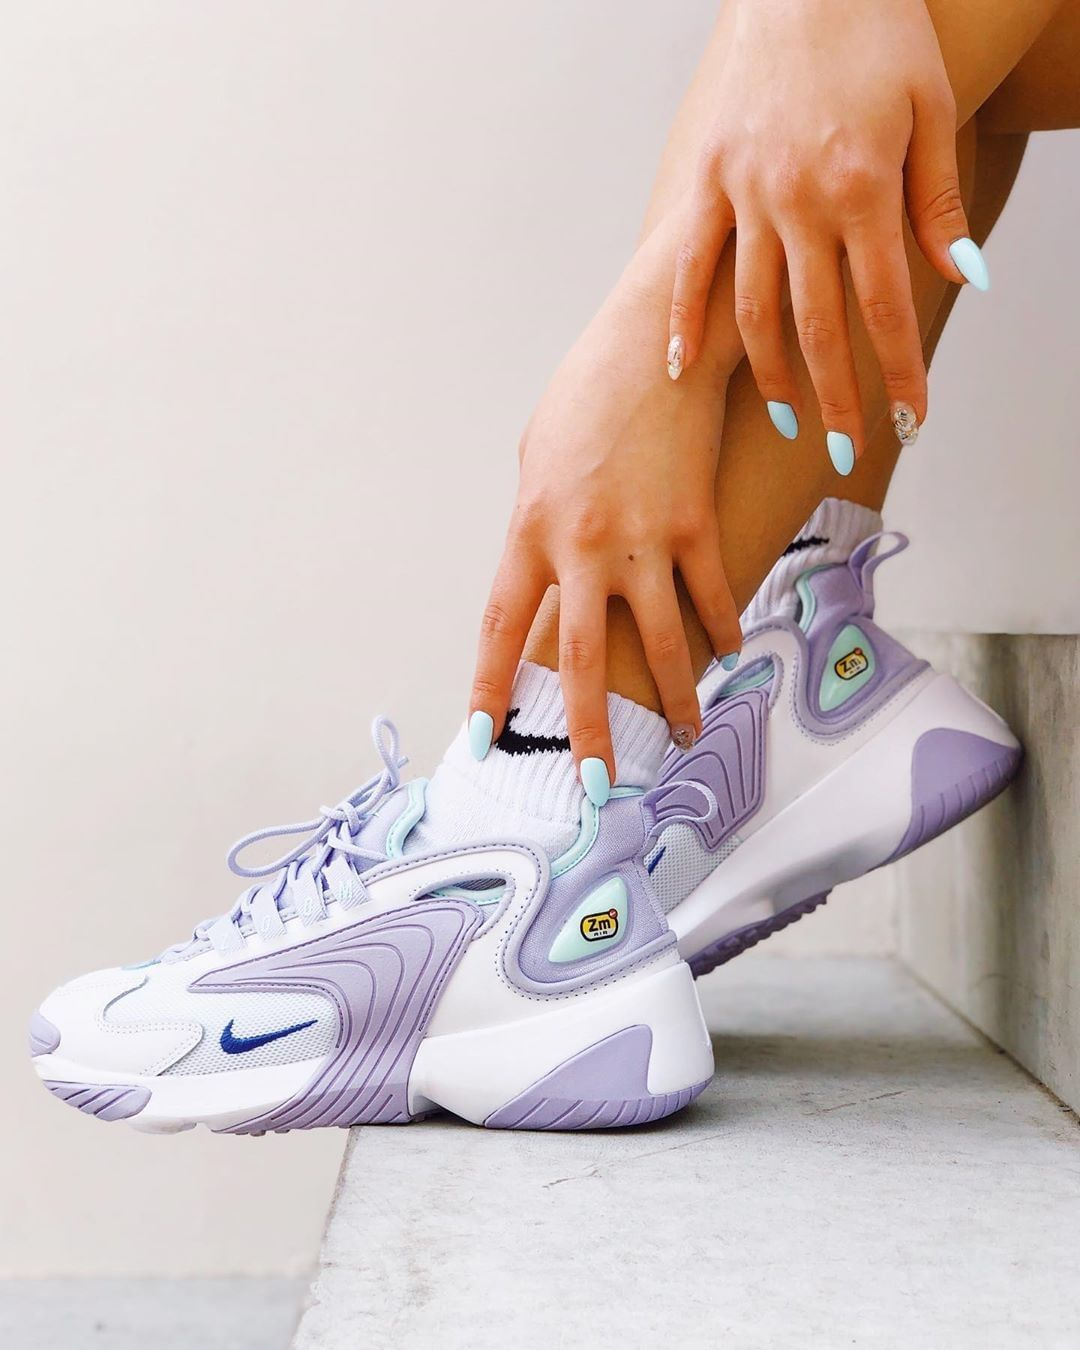 Nike ZOOM 2K WMNS  ⠀⠀⠀⠀⠀⠀⠀⠀⠀⠀⠀ Get yours now. Click to shop.  ⠀⠀⠀⠀⠀⠀⠀⠀⠀⠀⠀ @…-#* #everysize #girlonkicks #Nike #nikezoom #nikezoom2k #zoom2k